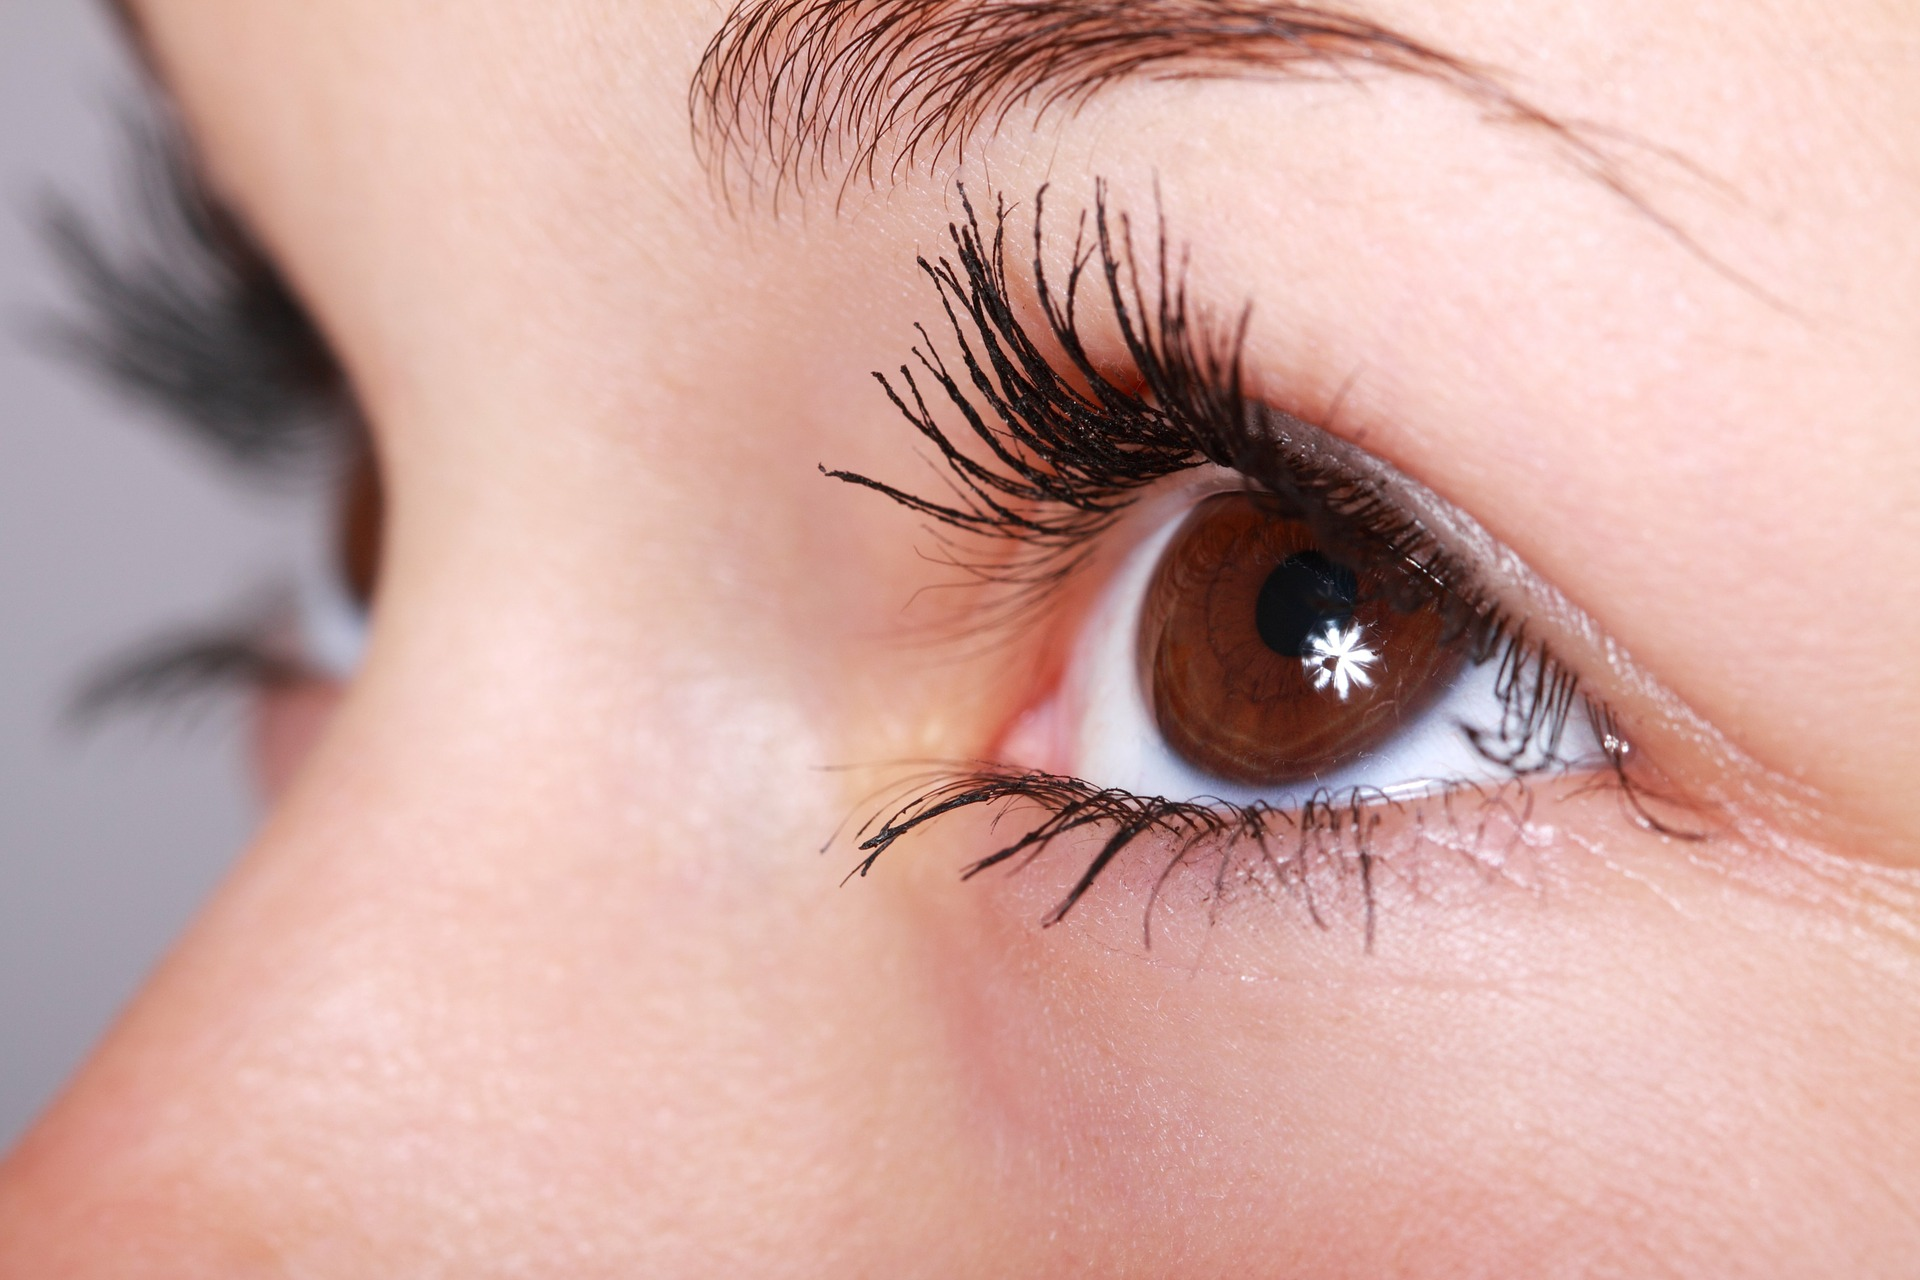 International Glaucoma Association UKEGS Annual Research Grant Open for Applications